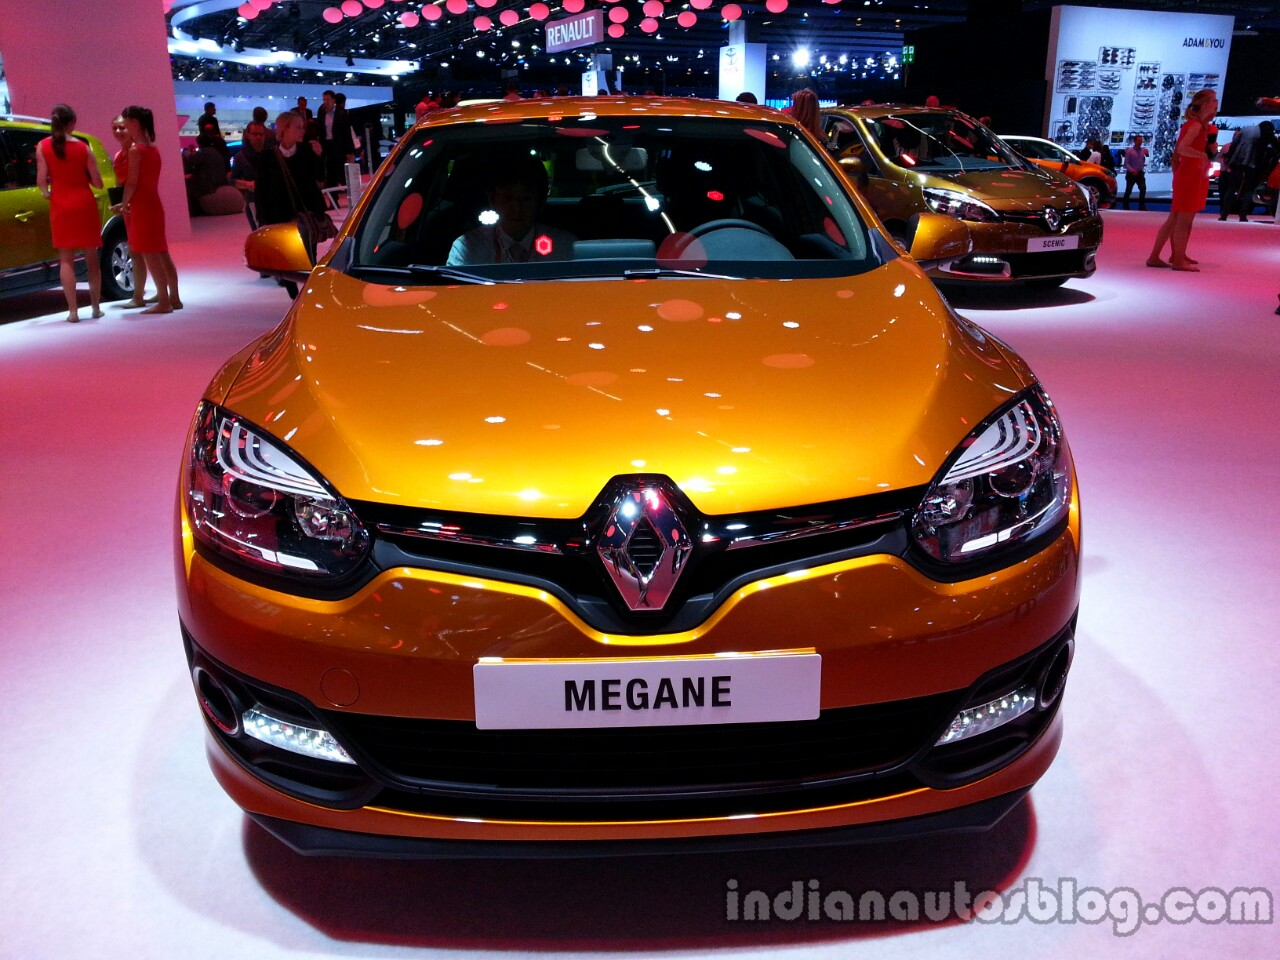 Front of the 2014 Renault Megane